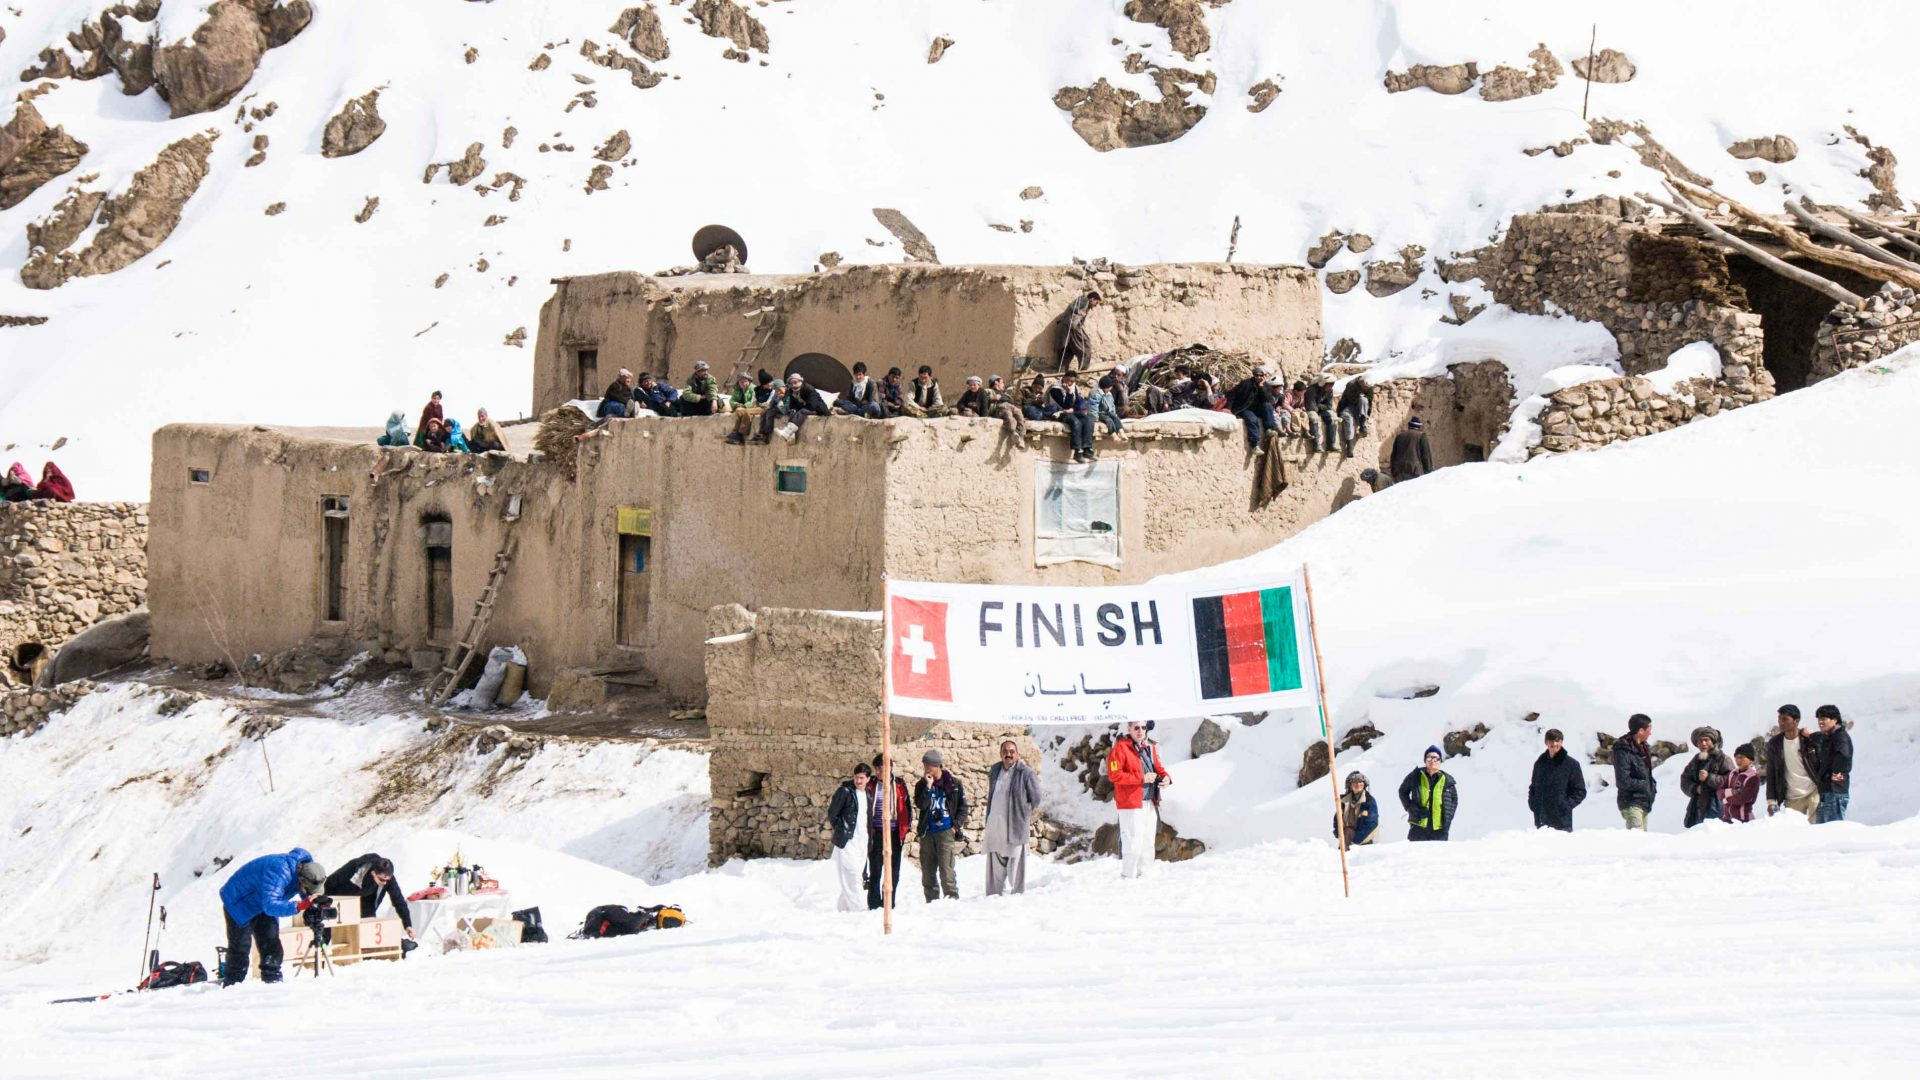 Bystanders ready to see the winners at the finish line of the Afghan Ski Challenge.